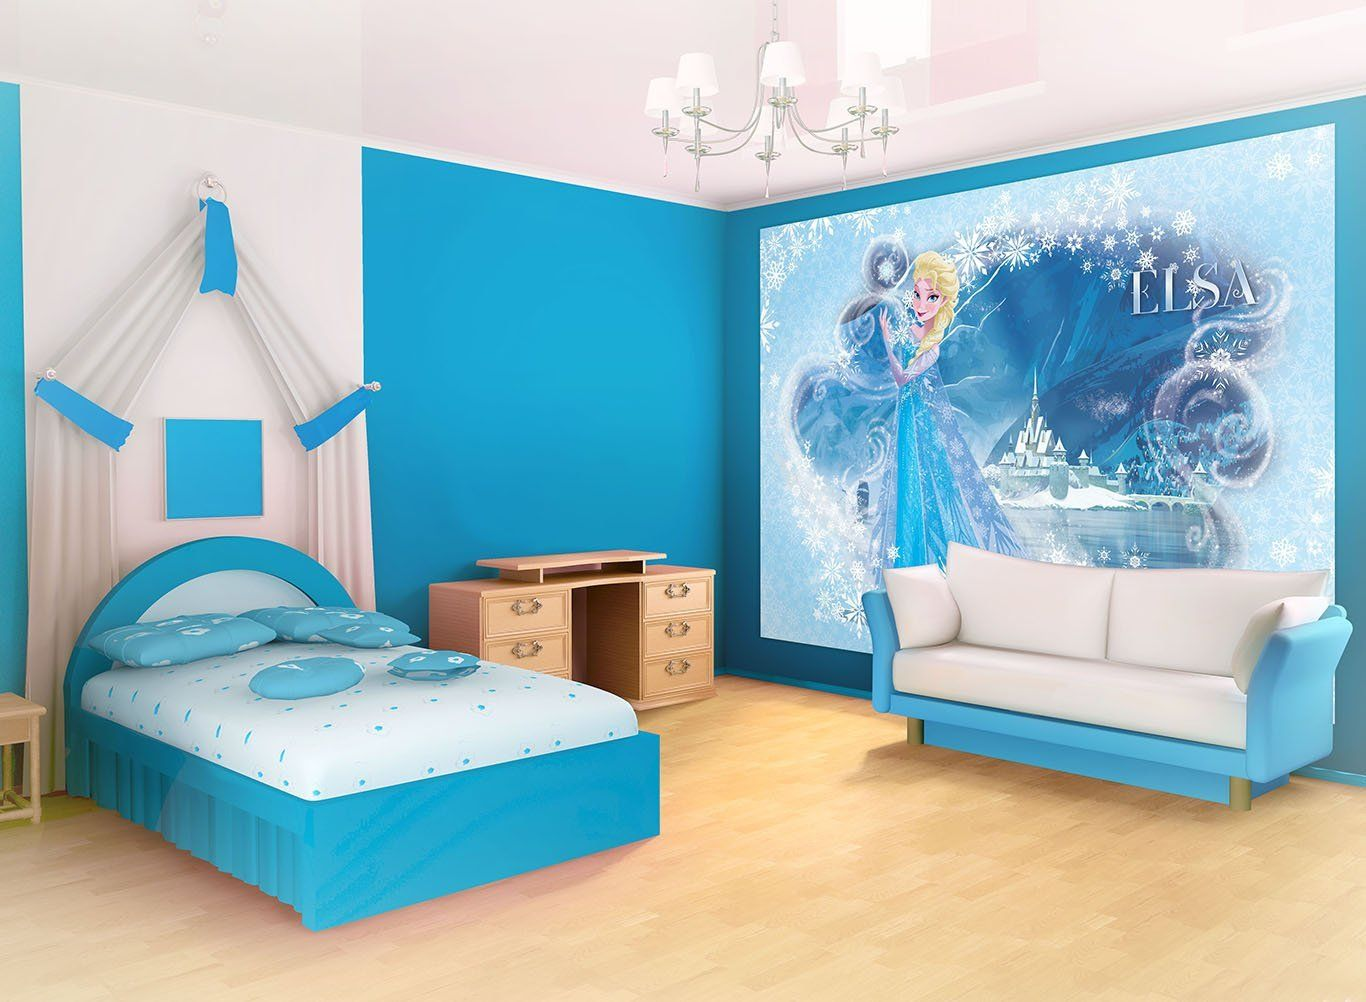 vlies fototapete fototapeten tapete tapeten disney eisk nigin elsa 835 ve baumarkt. Black Bedroom Furniture Sets. Home Design Ideas